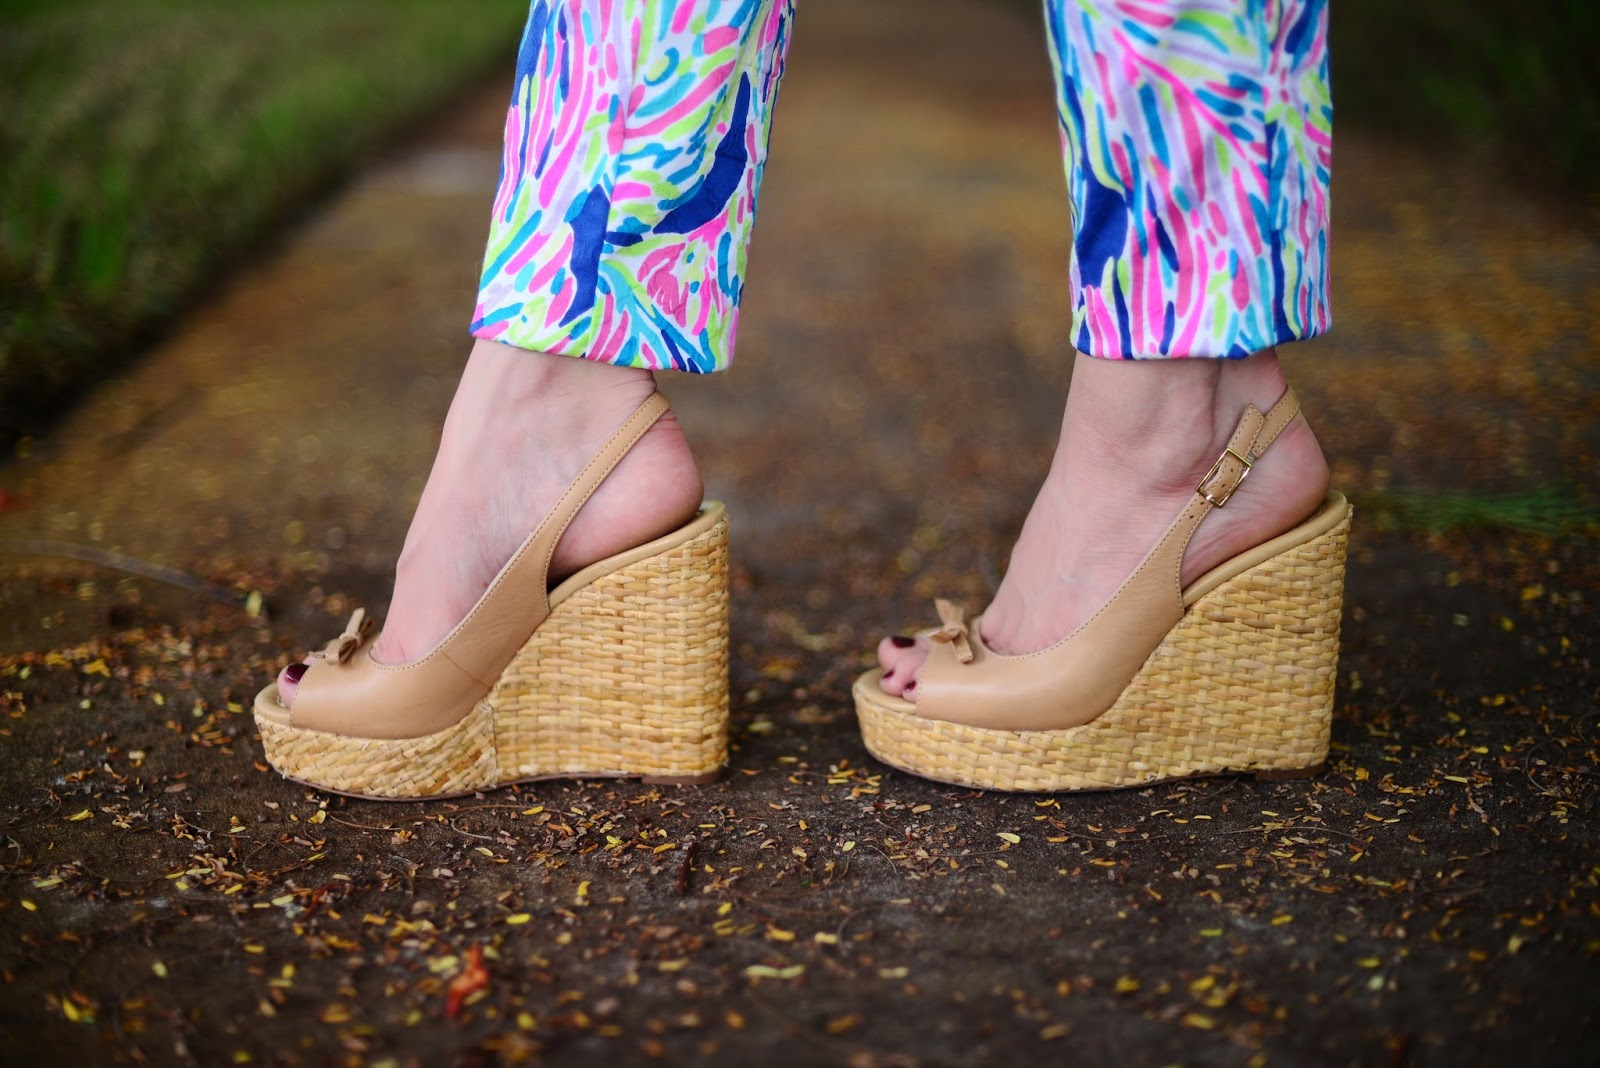 The Neapolitan, Naples, Crop top, printed pants, Lilly Pulitzer, summer